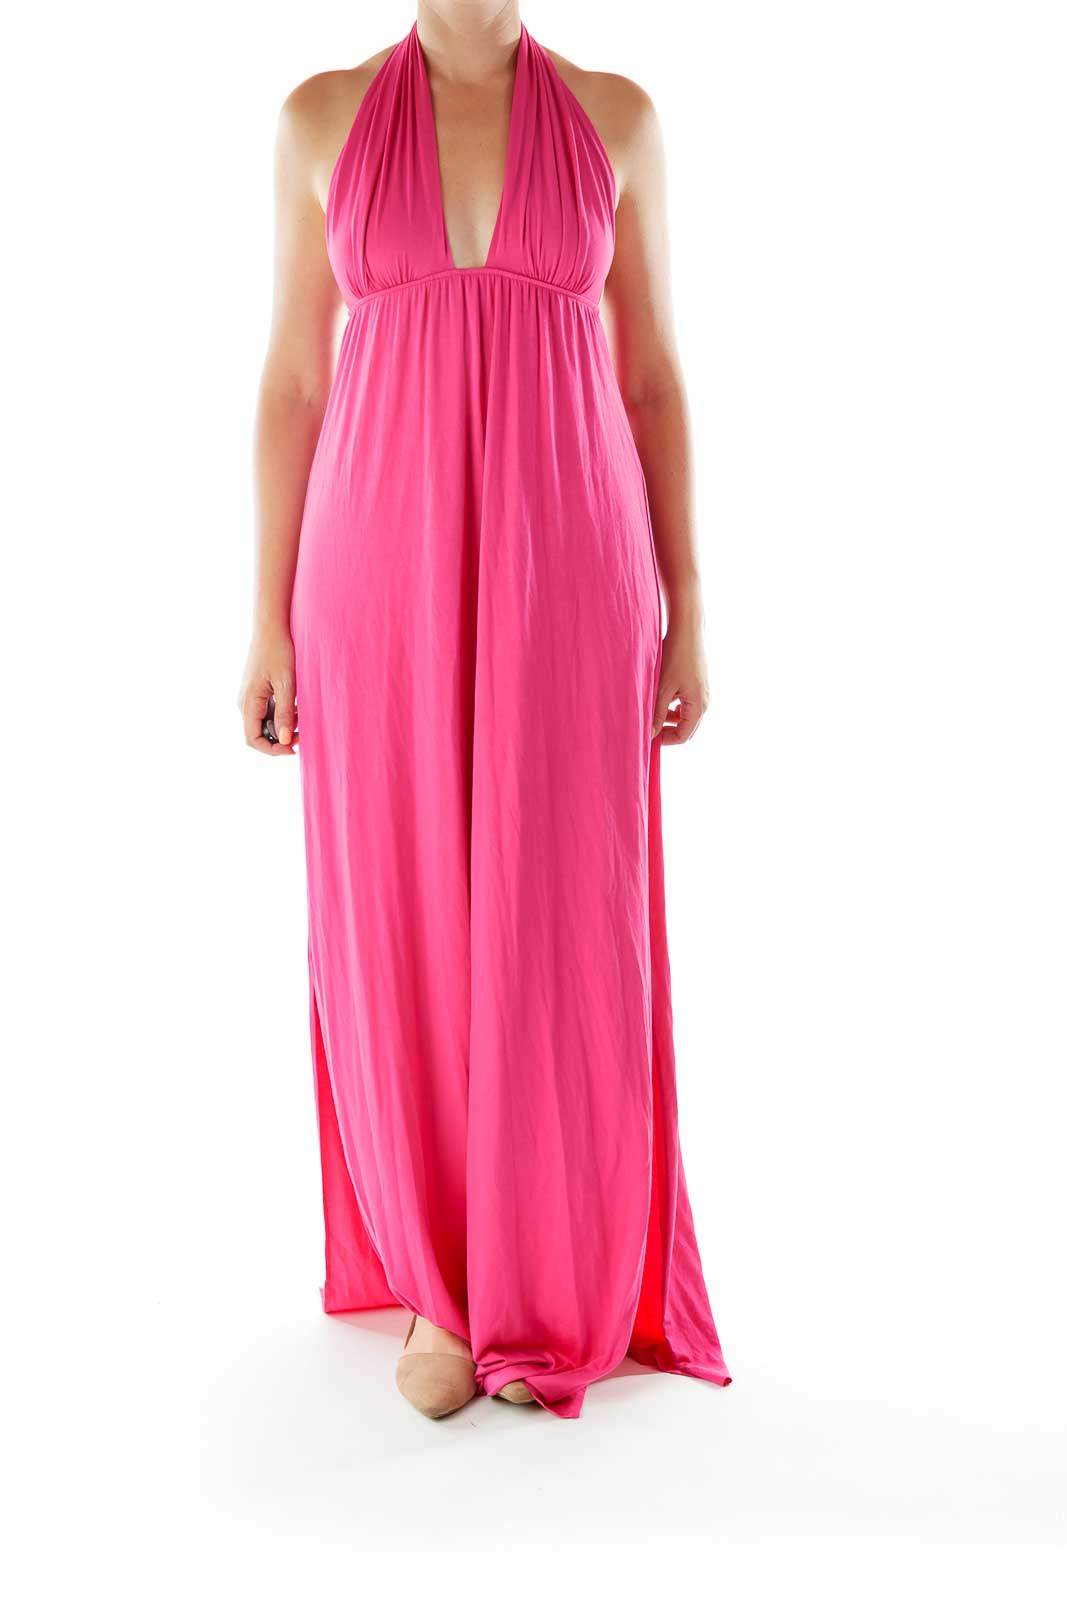 Hot Pink Strapless Day Dress Front